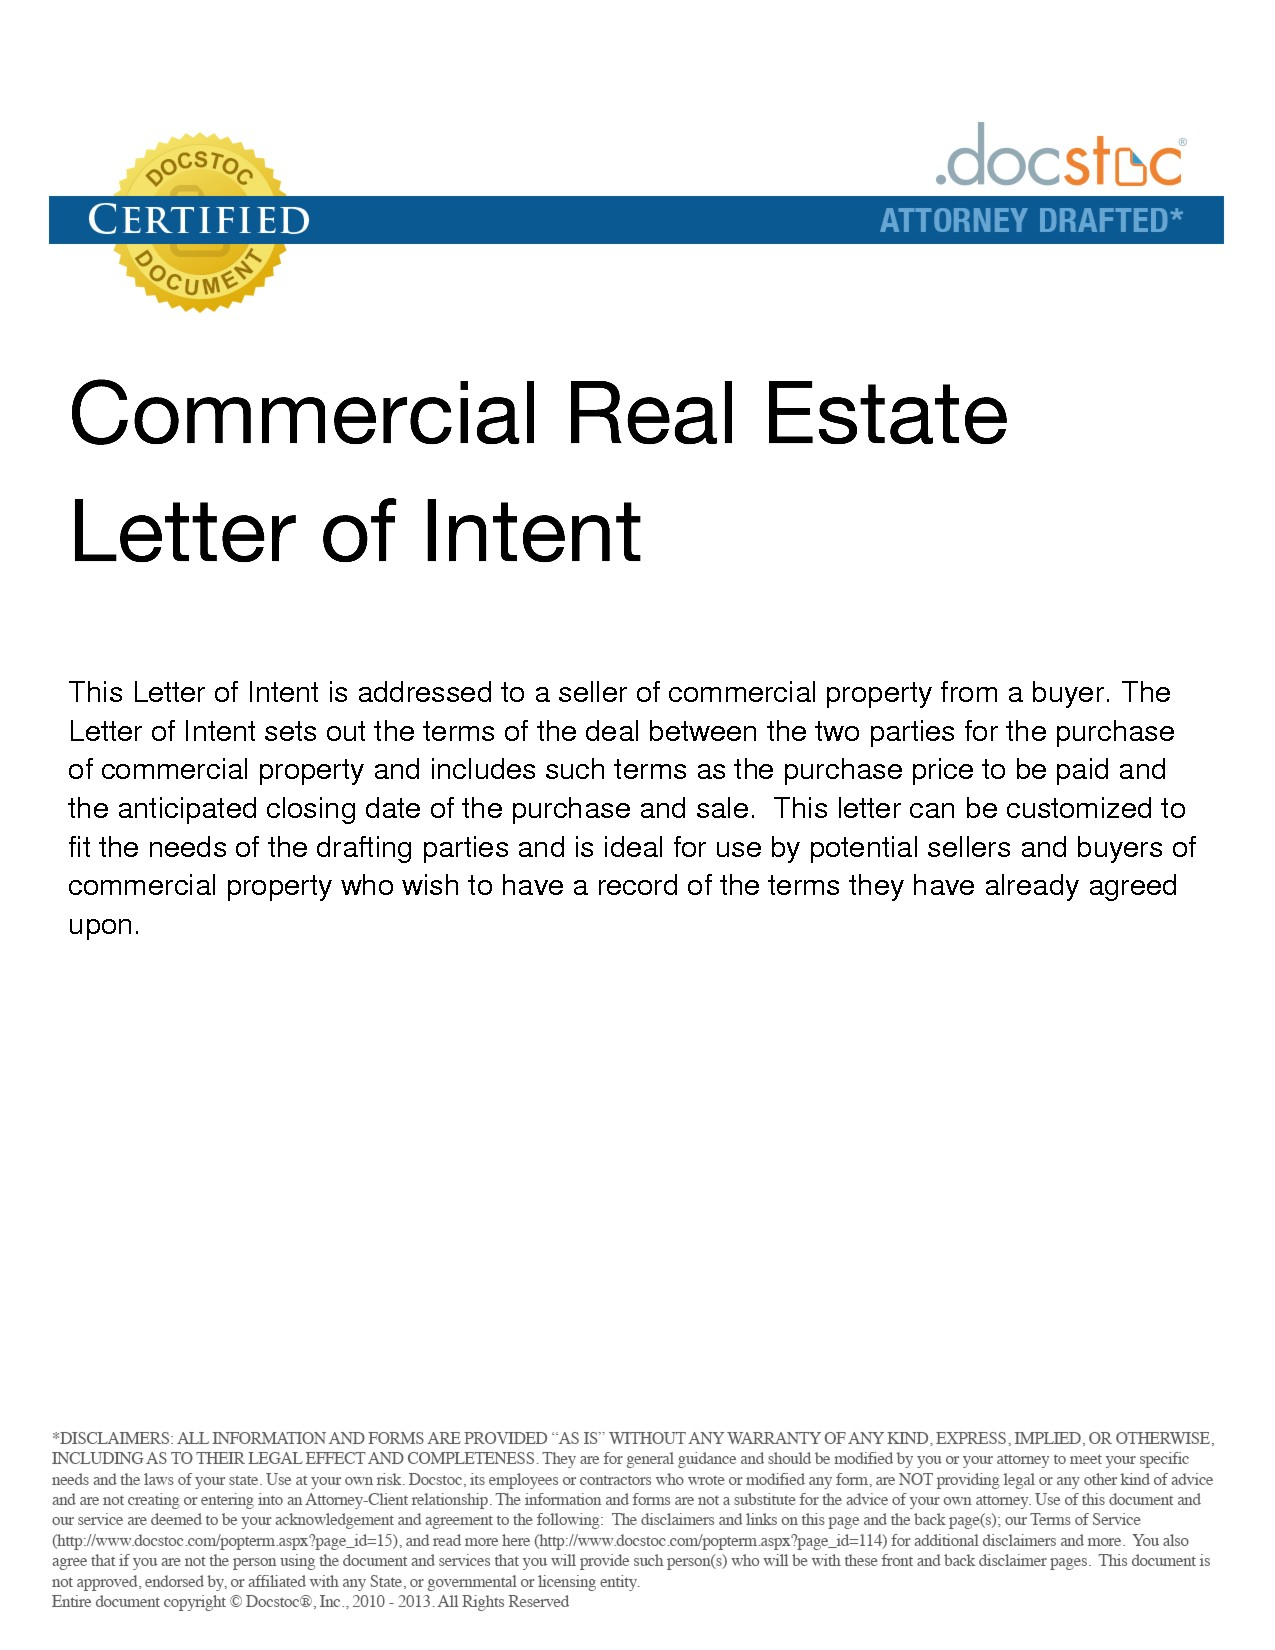 Commercial Real Estate Letter Of Intent Template - Mercial Real Estate Purchase Letter Intent Sample